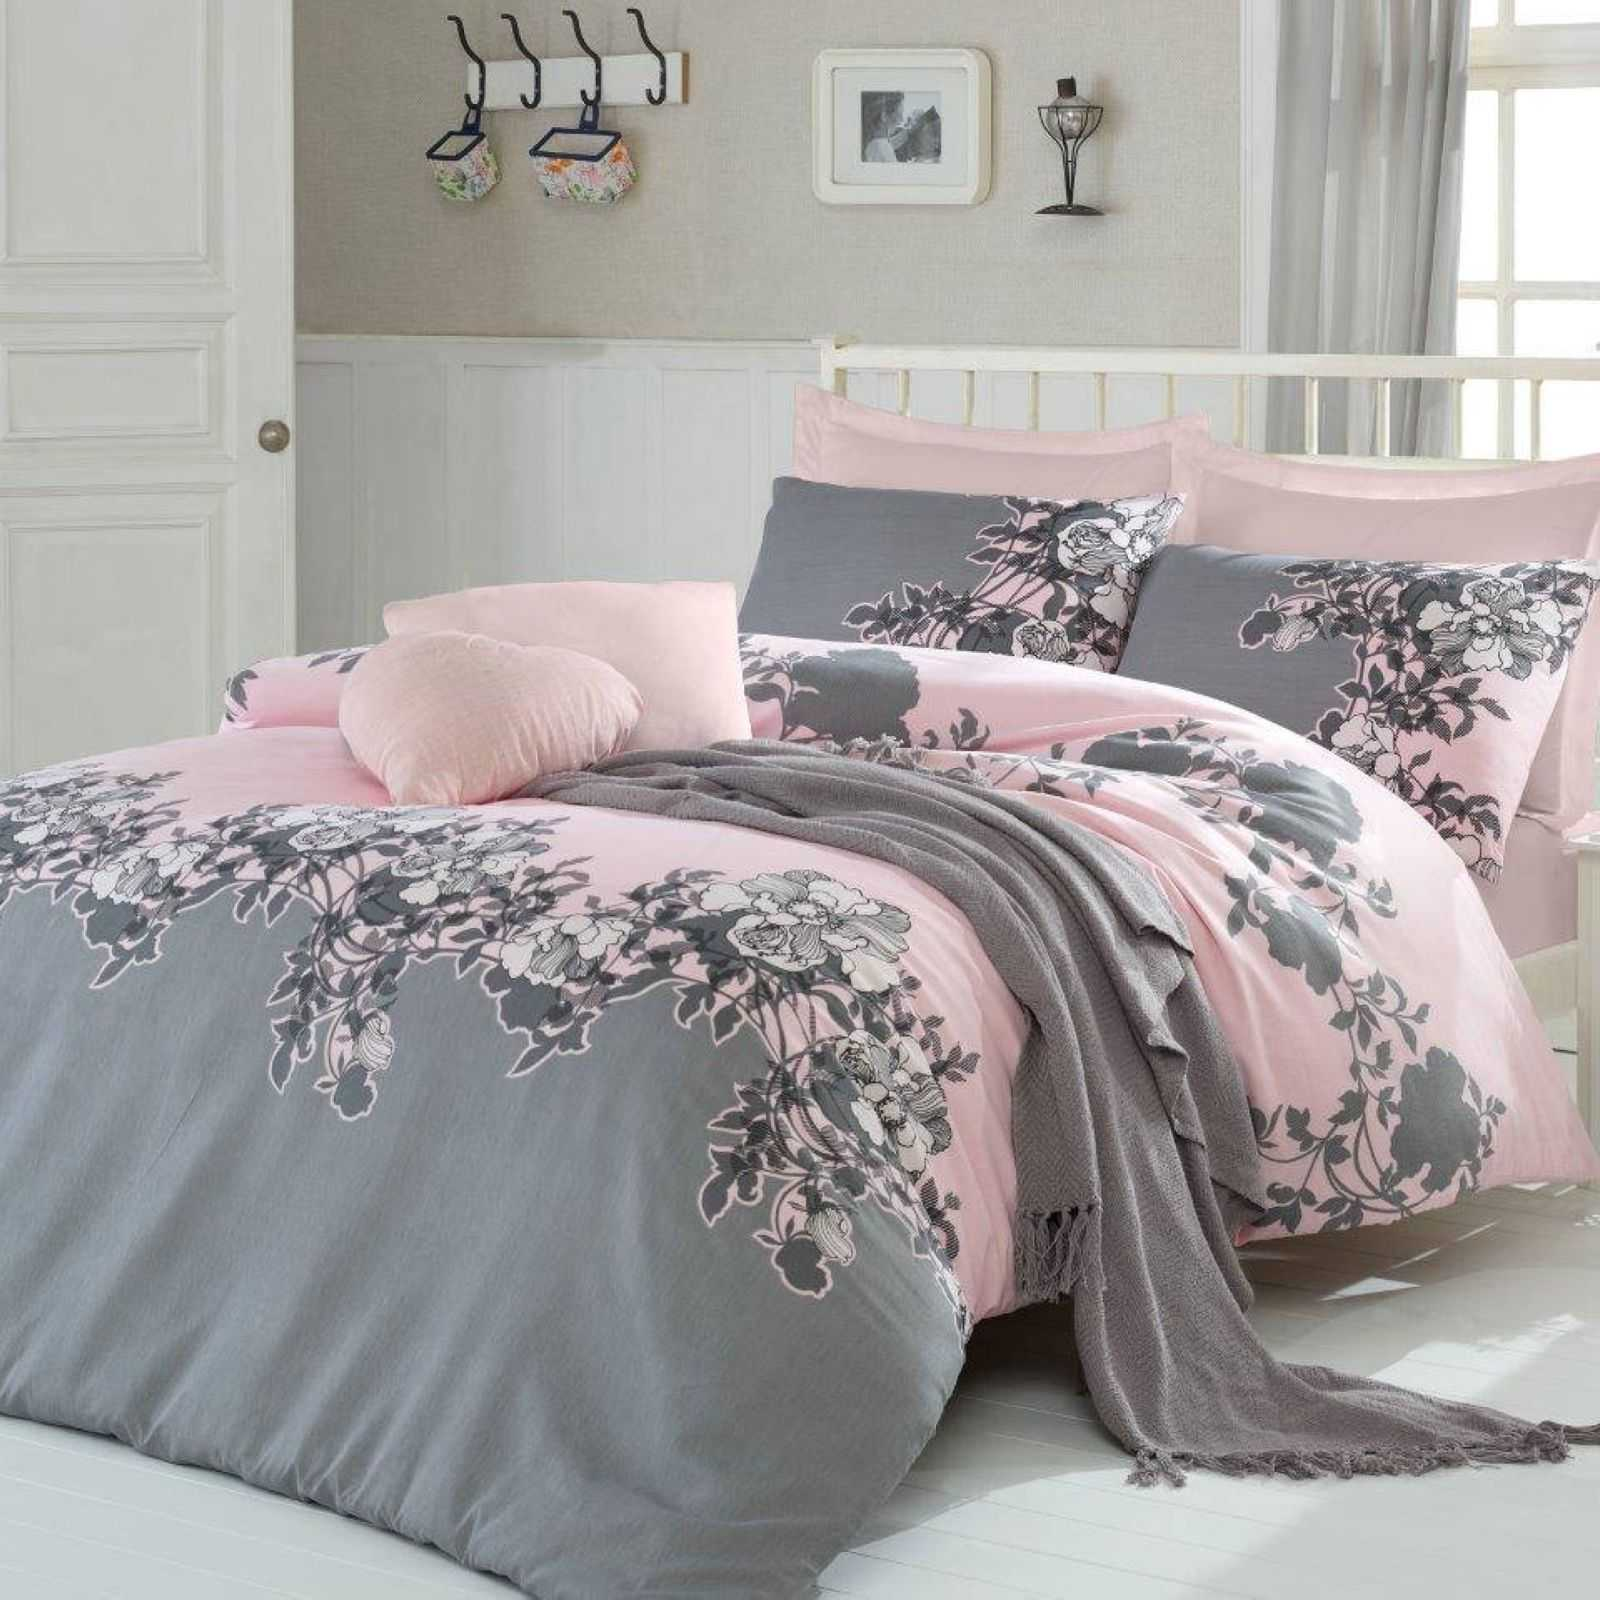 eponj home rodez bettw sche set grau rosa brandalley. Black Bedroom Furniture Sets. Home Design Ideas